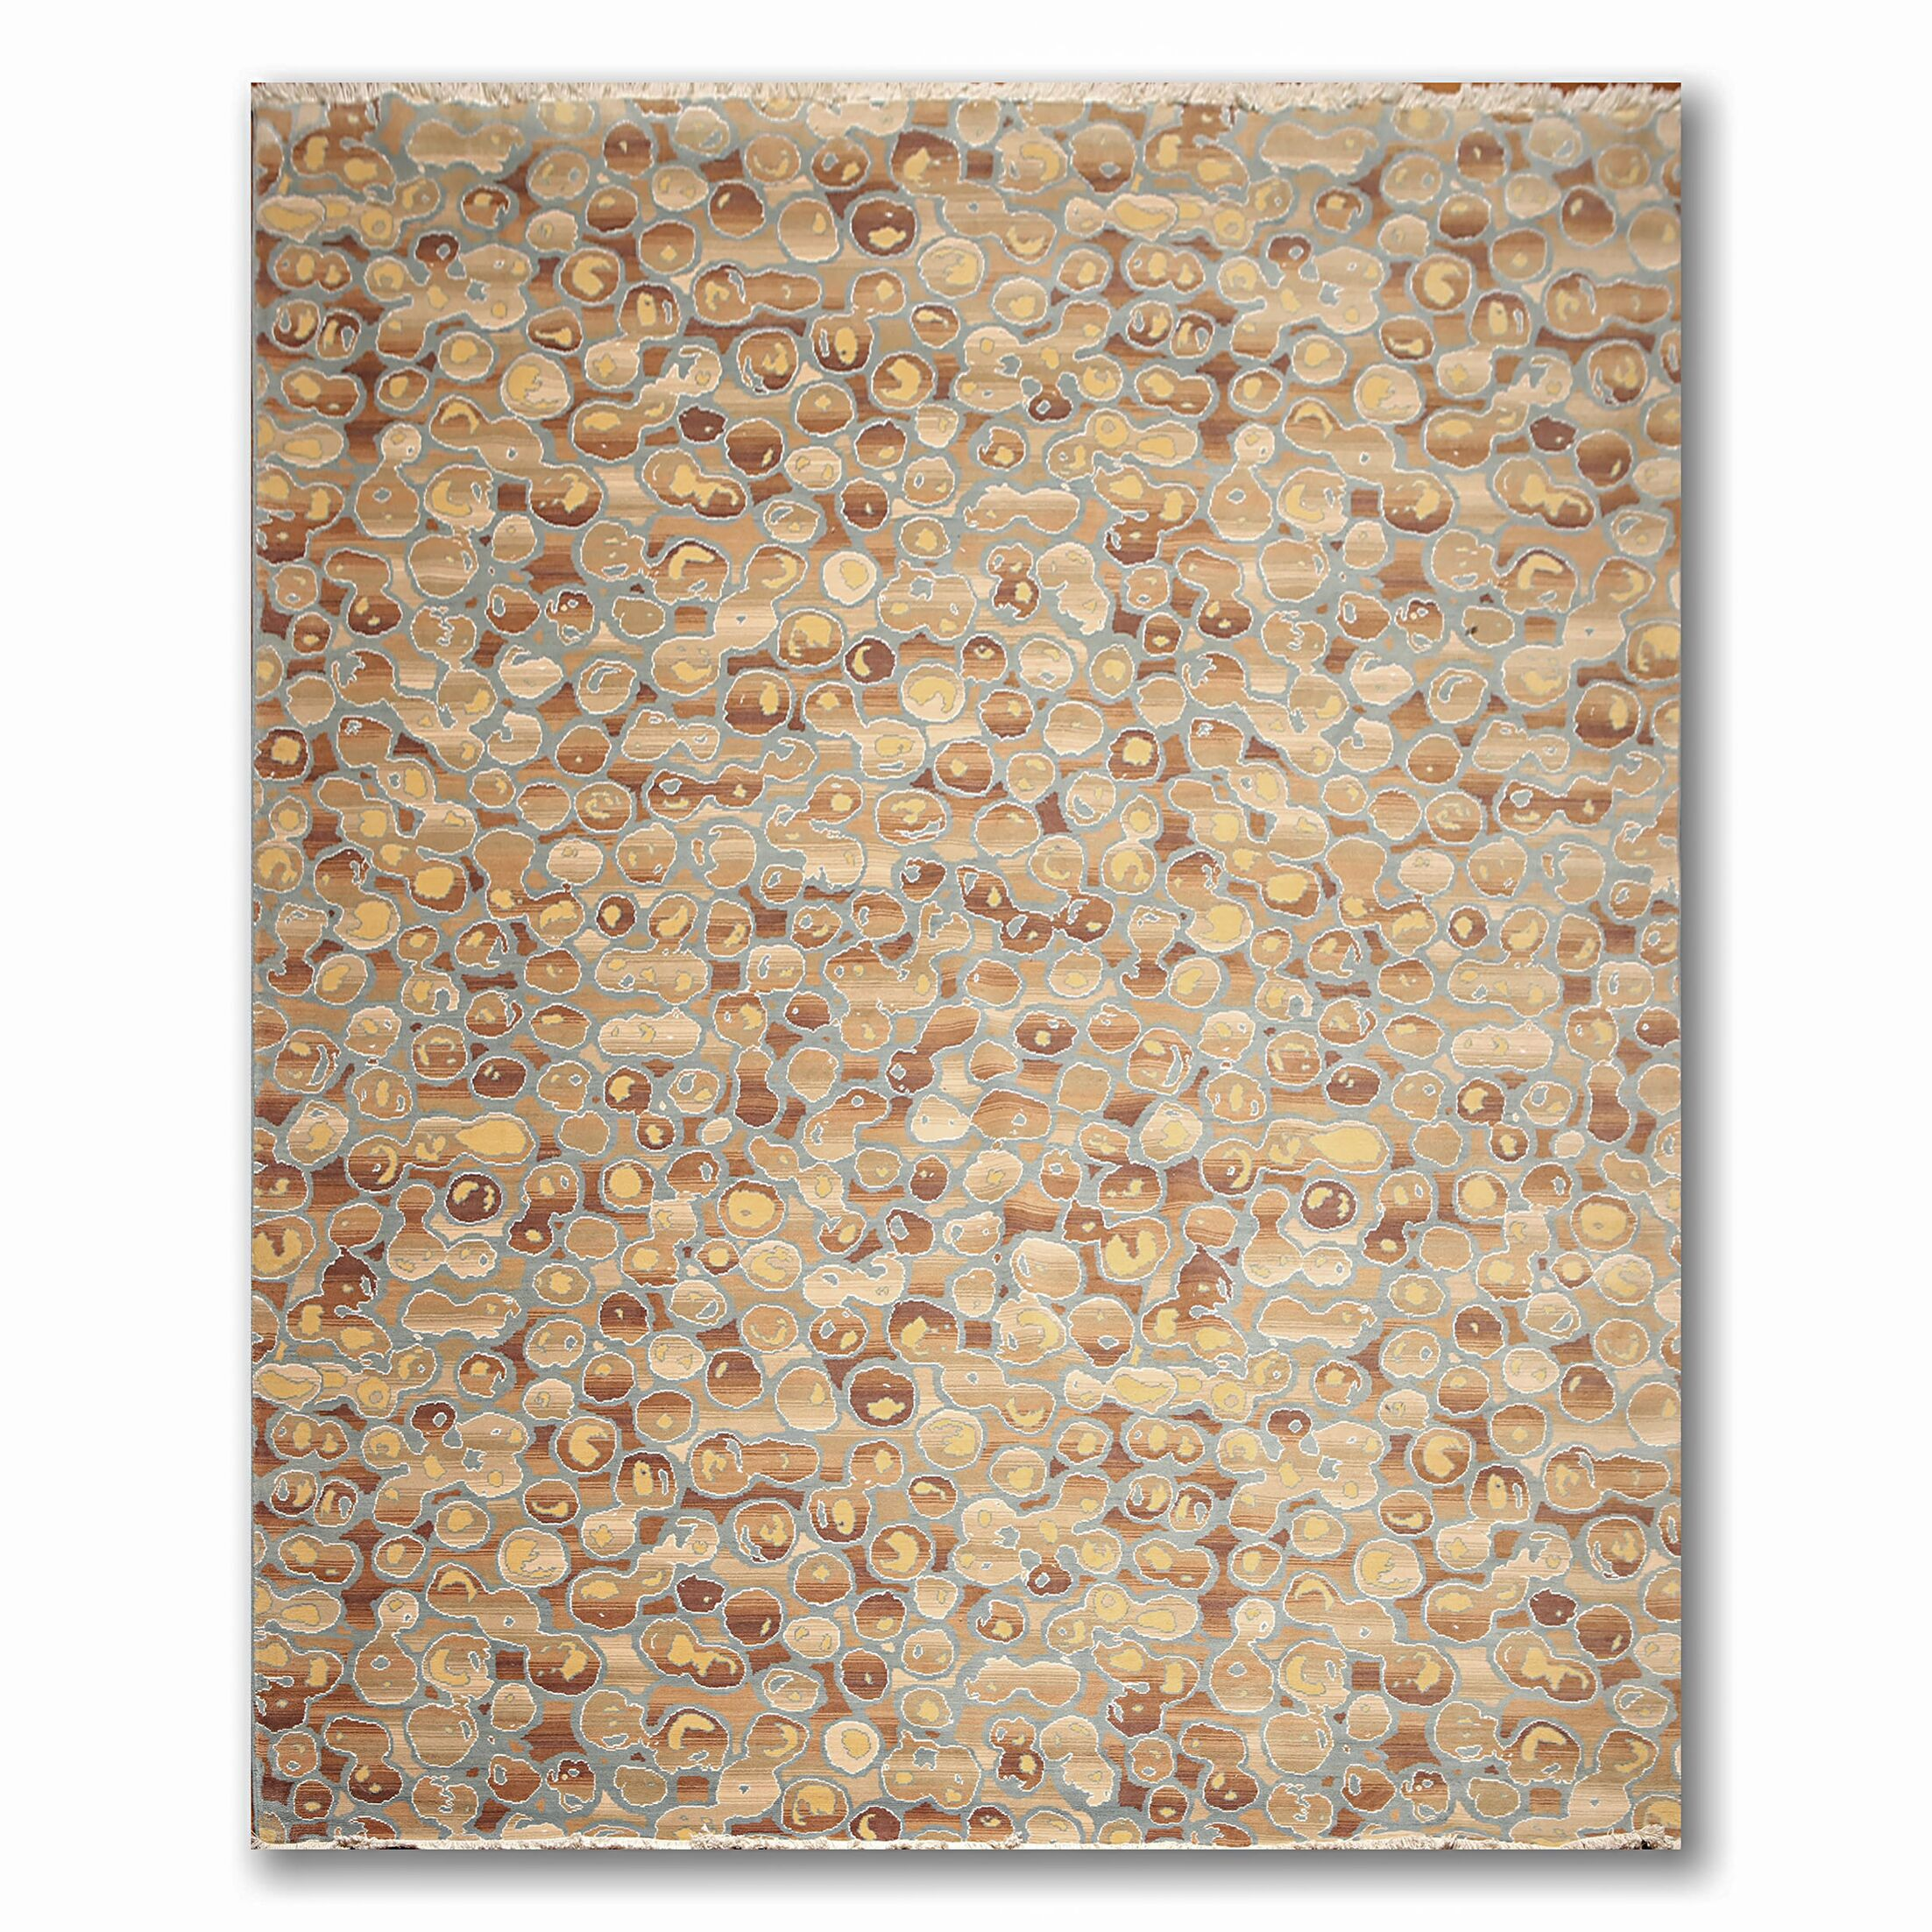 One-of-a-Kind Imlay Pile Hand-Knotted Beige/Brown Area Rug